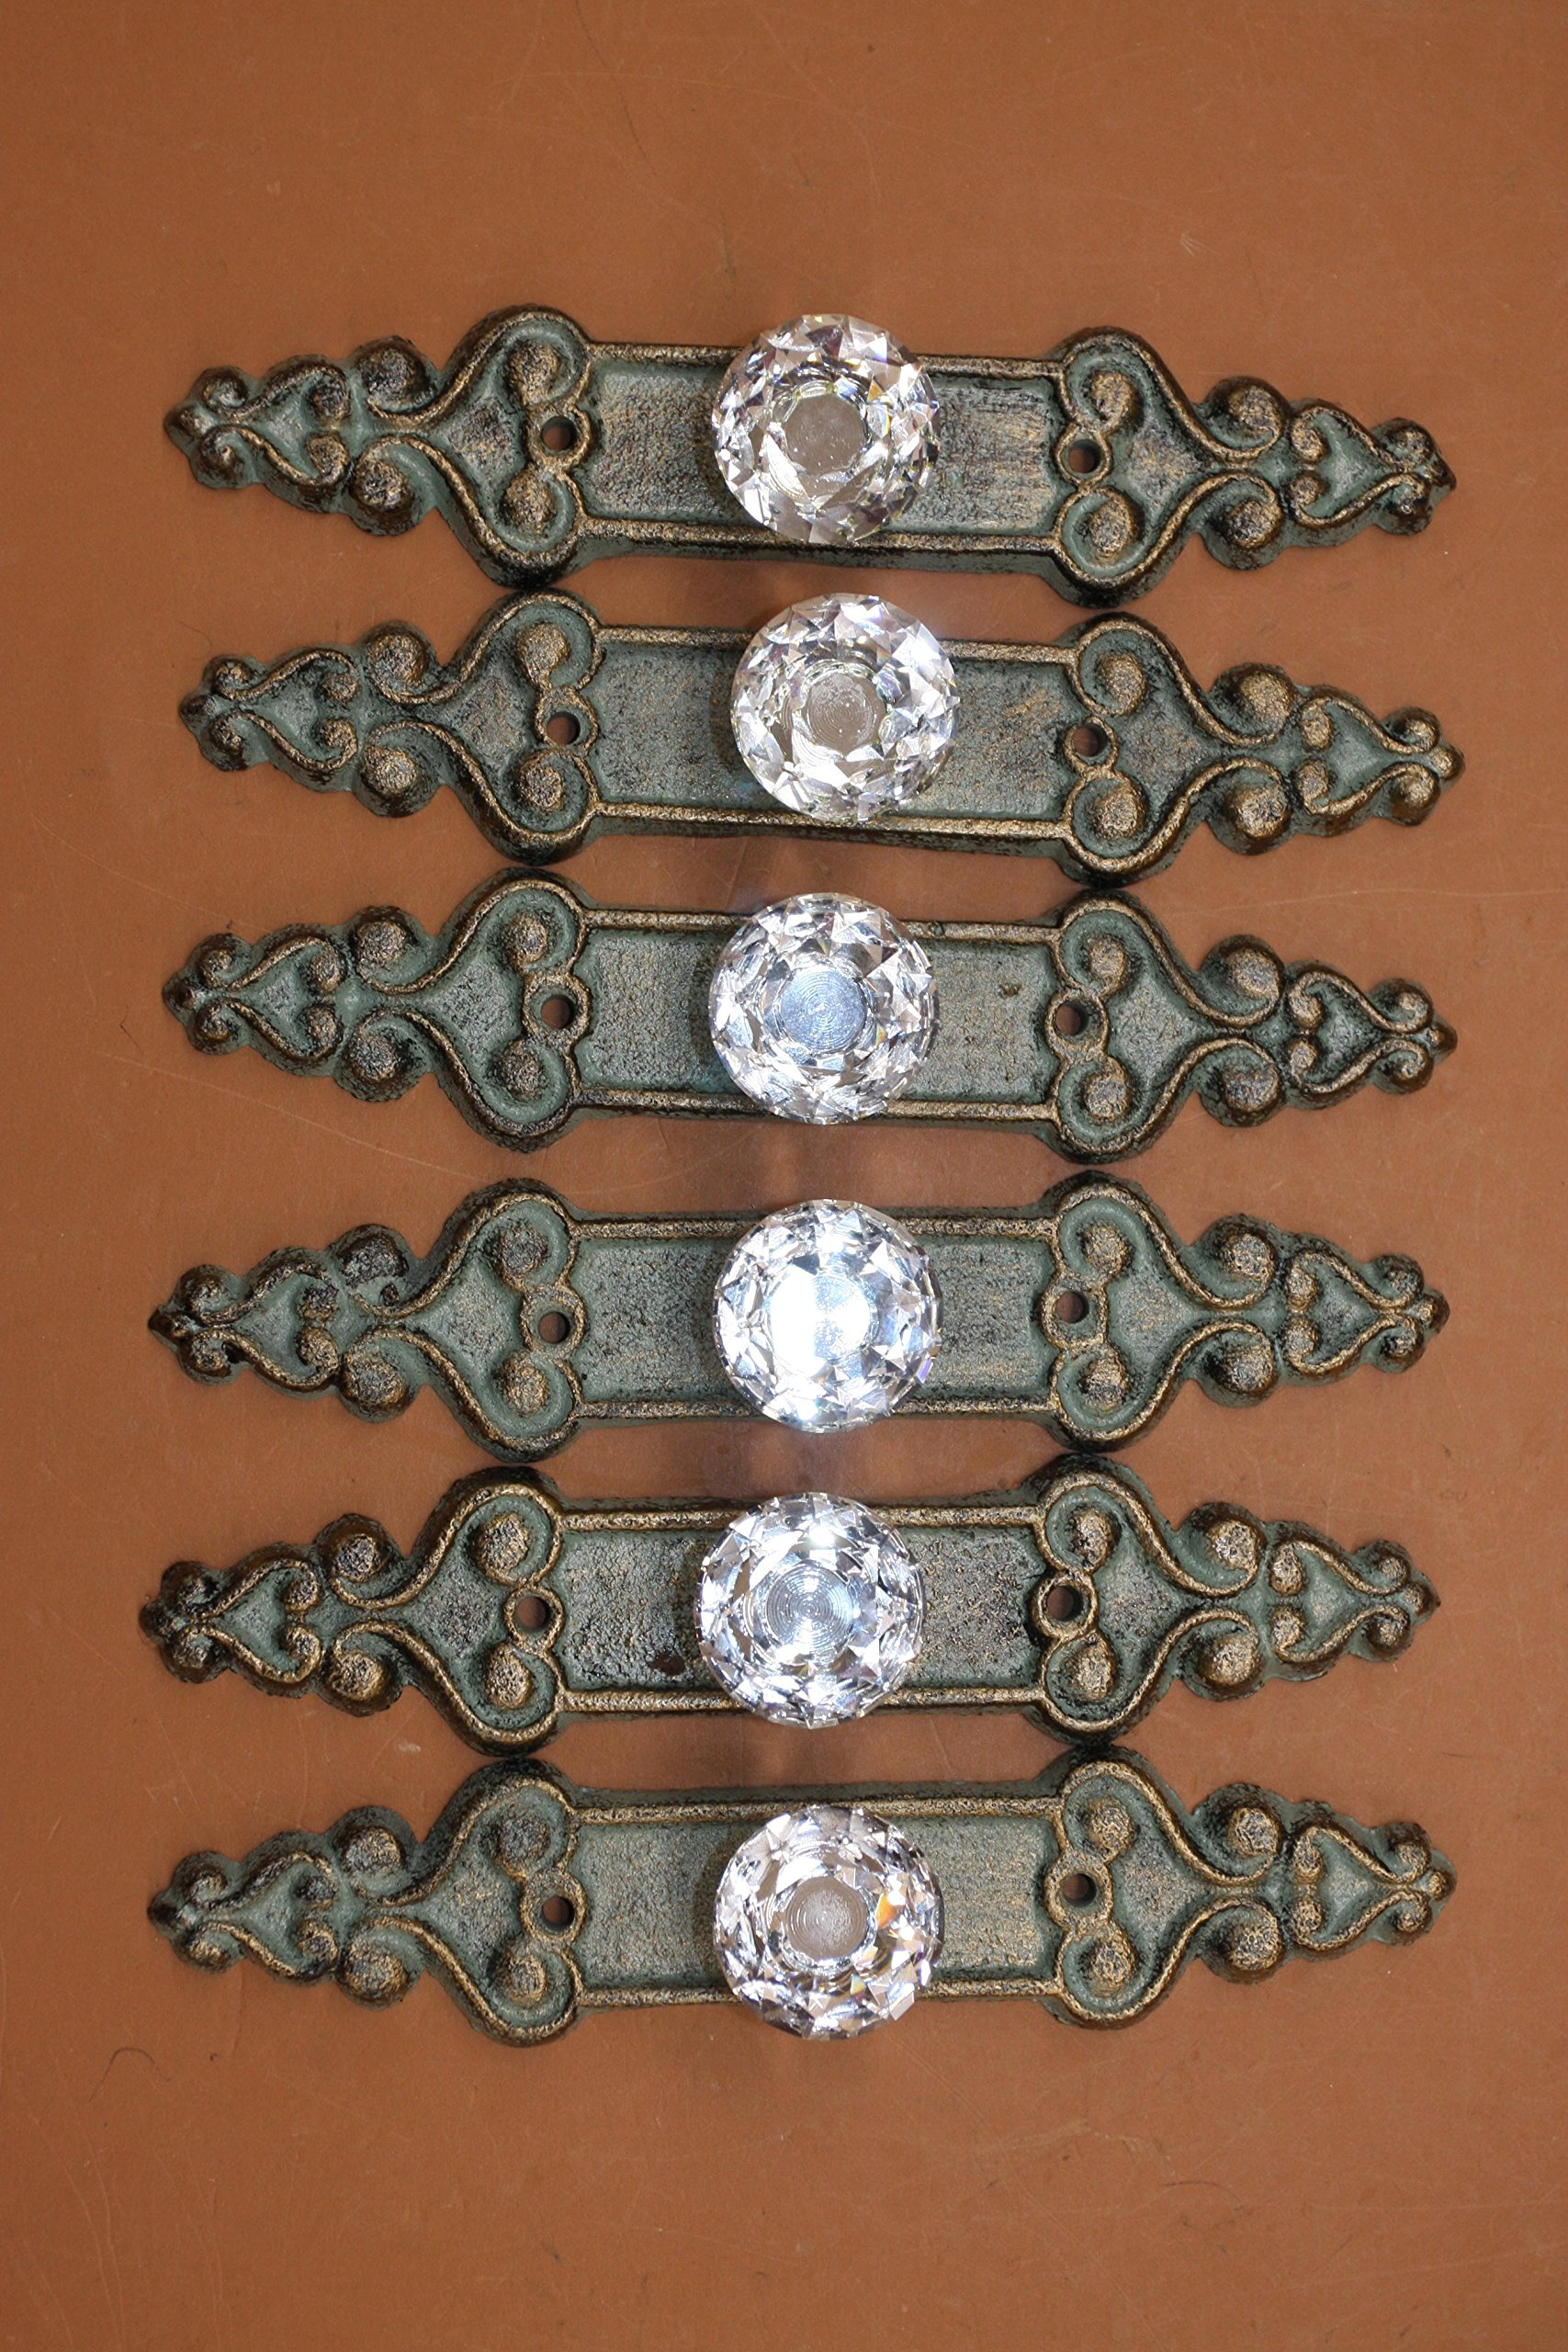 Elegant Crystal Drawer Pulls Cast Iron Bronze-look Backplate, 7 inch long, HW-25, Set of 6 by Cast Iron Decor (Image #1)